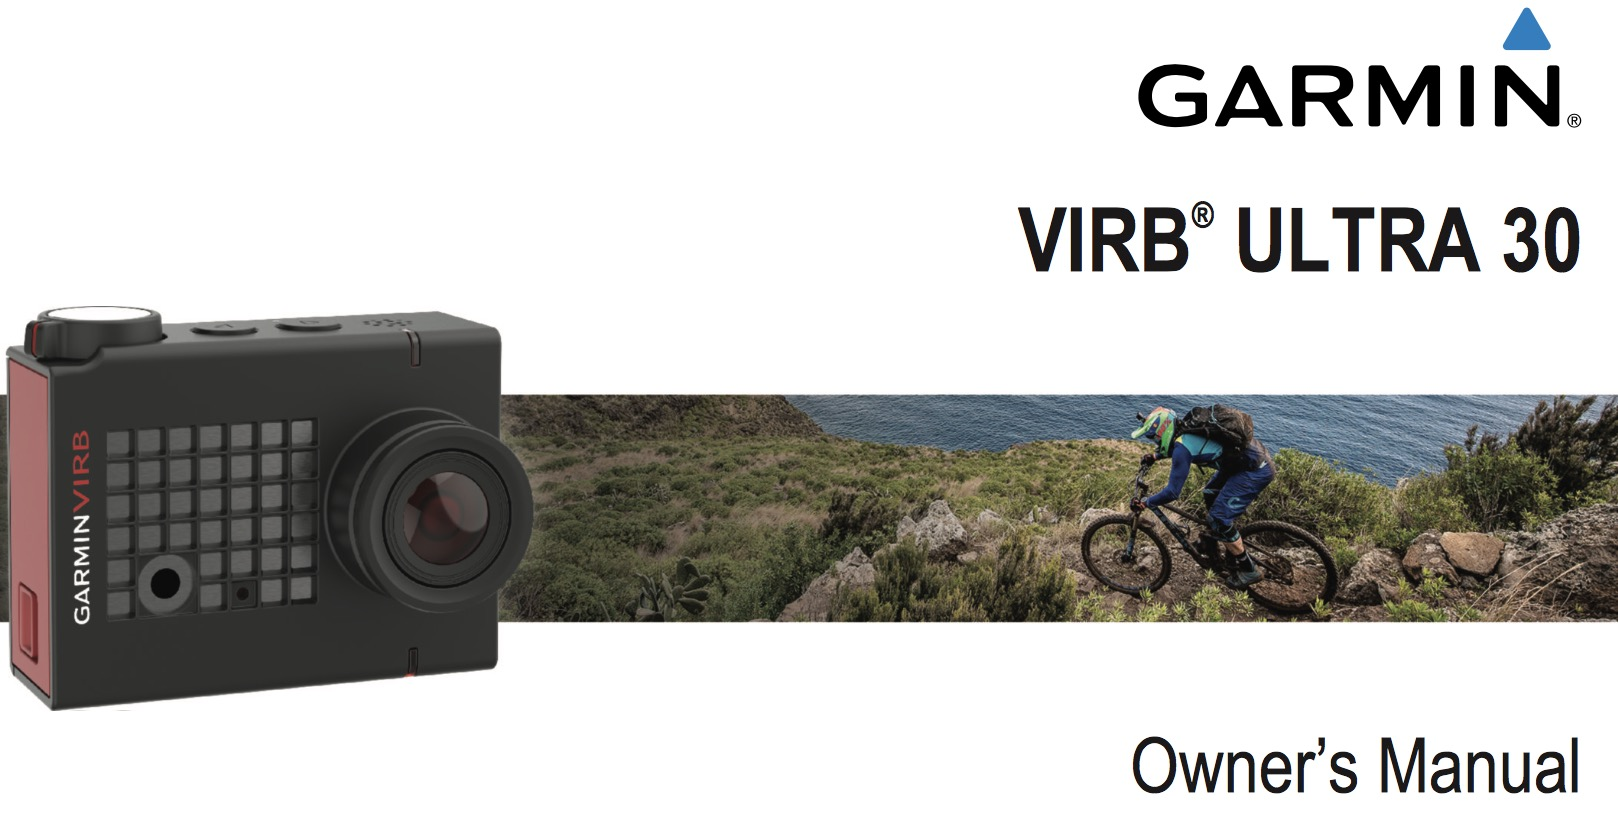 TitaniumGeek Screen-Shot-2017-05-07-at-10.47.23 Garmin VIRB Ultra 30 Action Camera Review - Have They Made a GoPro Killer? youtube waterproof Virb video movie ios garmin cycling camera case action camera